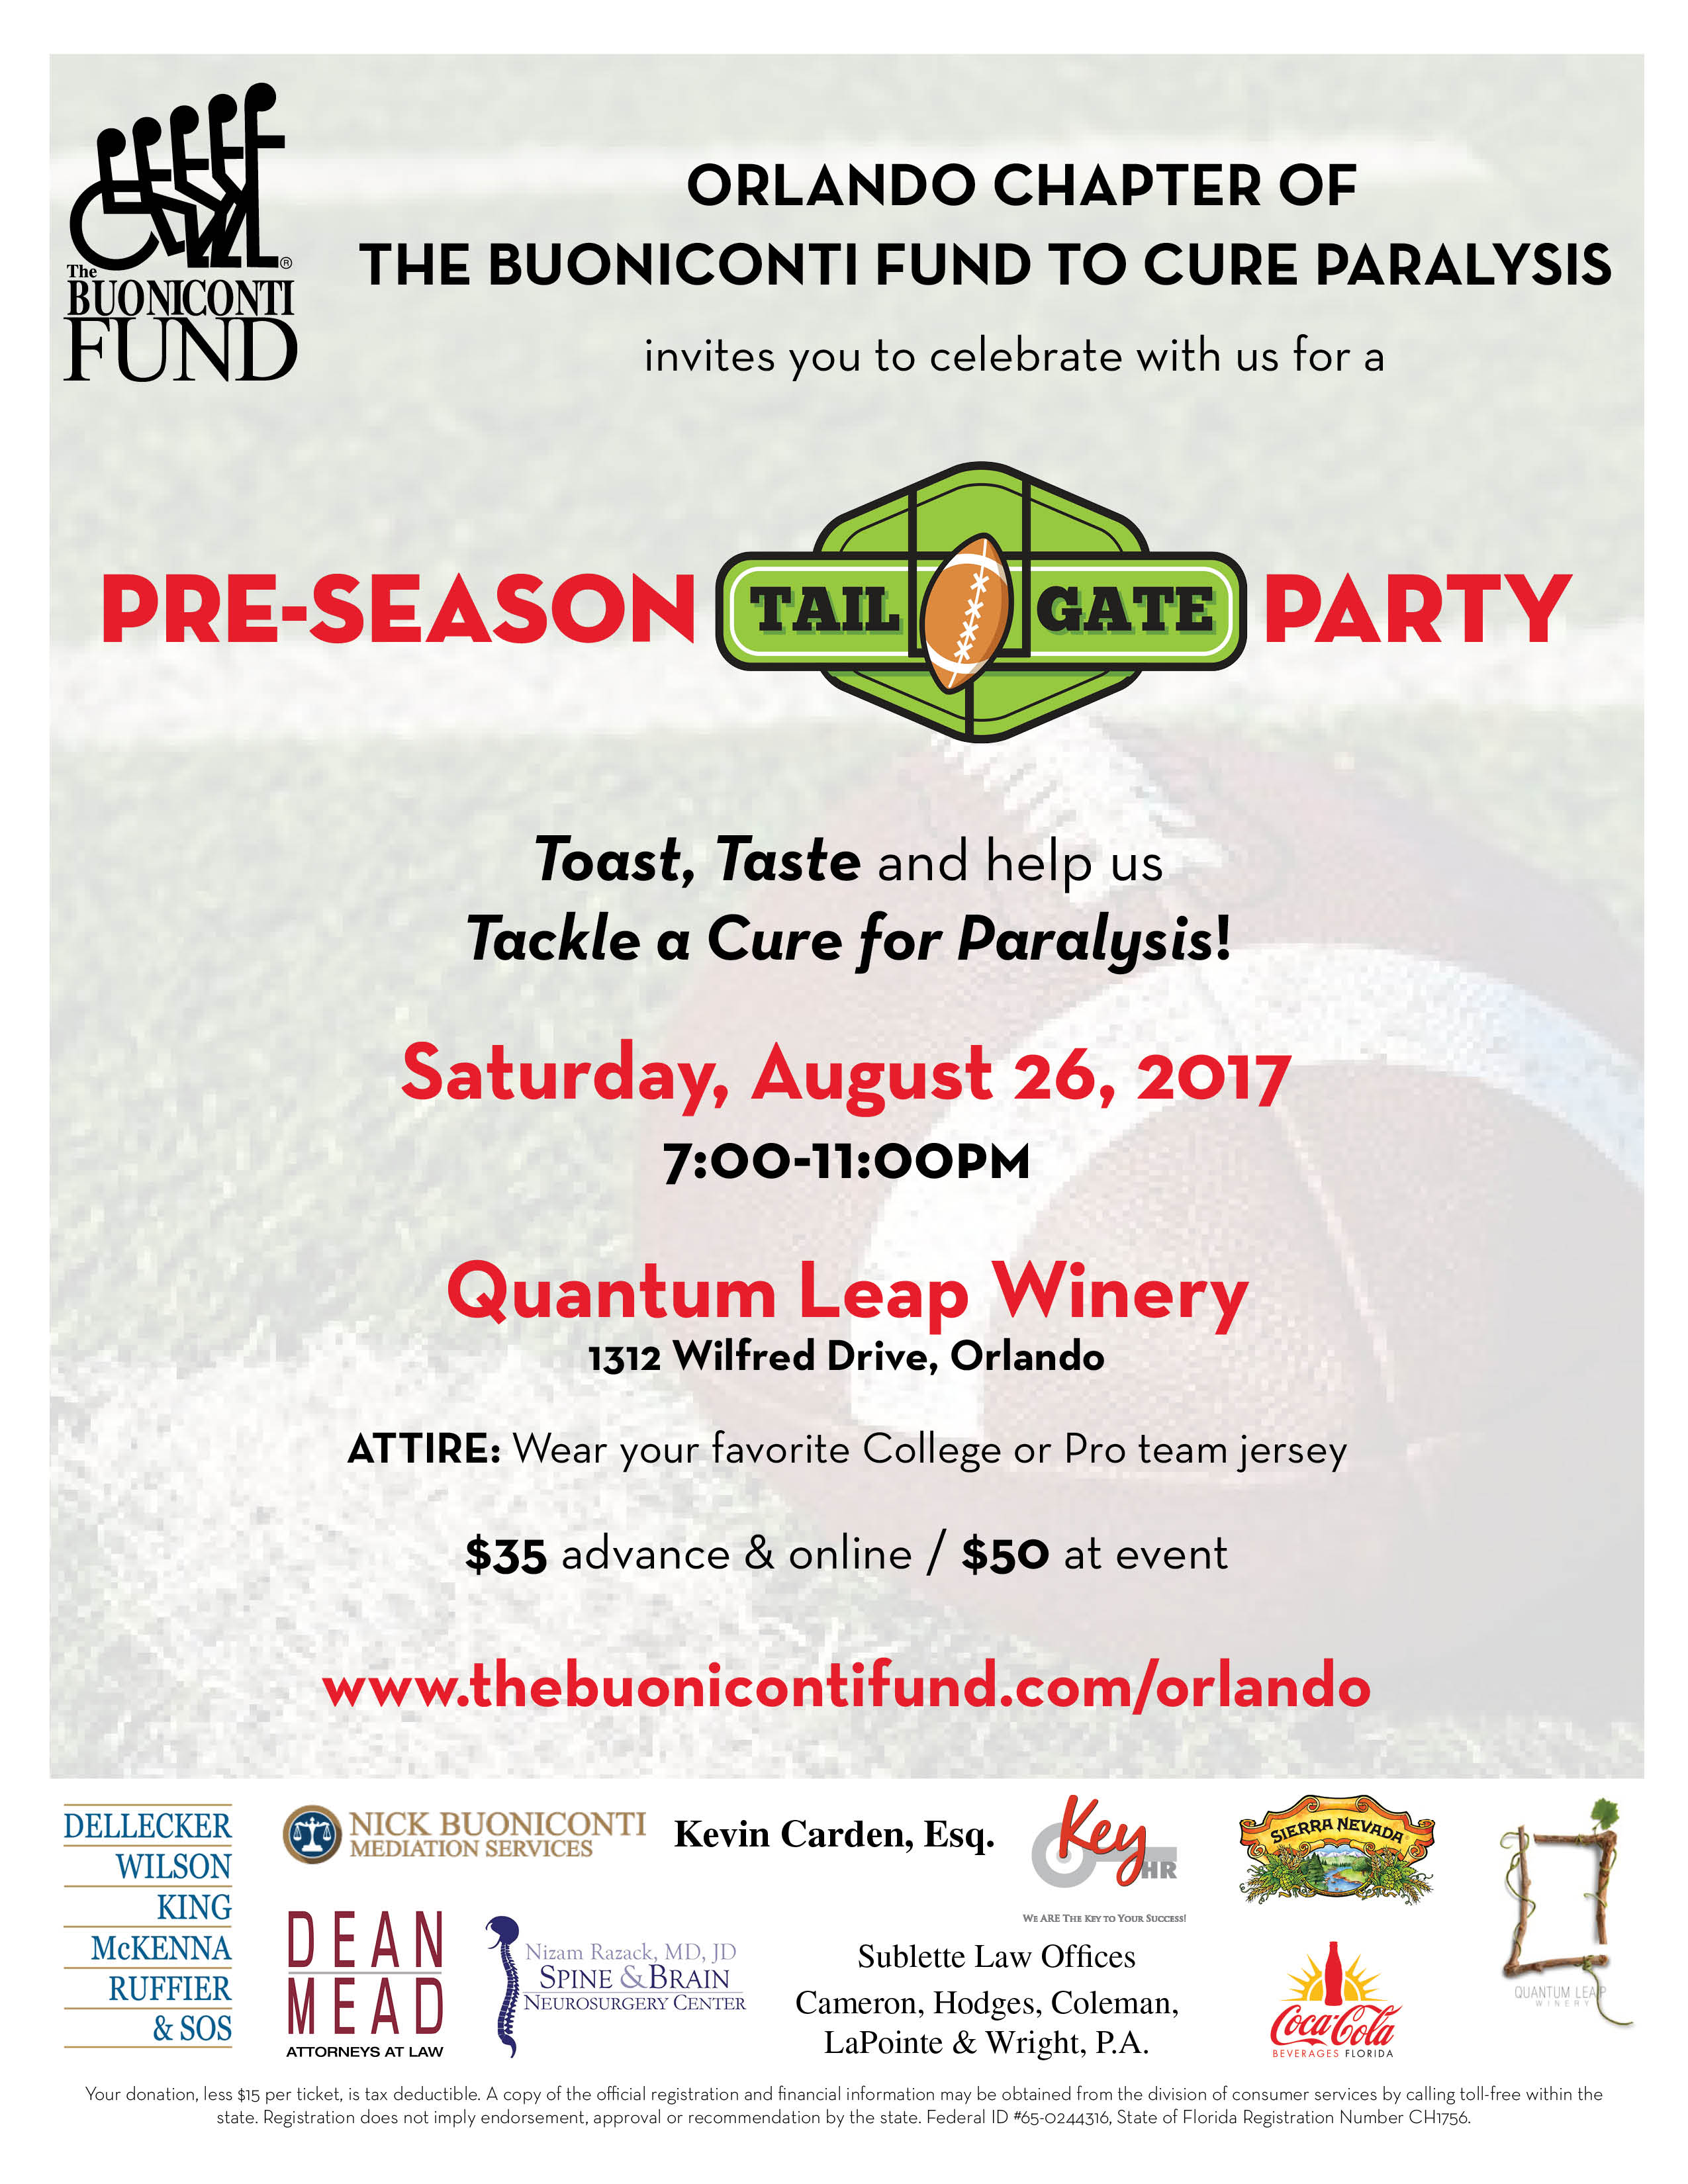 Orlando Chapter's Pre-Season Tailgate Party